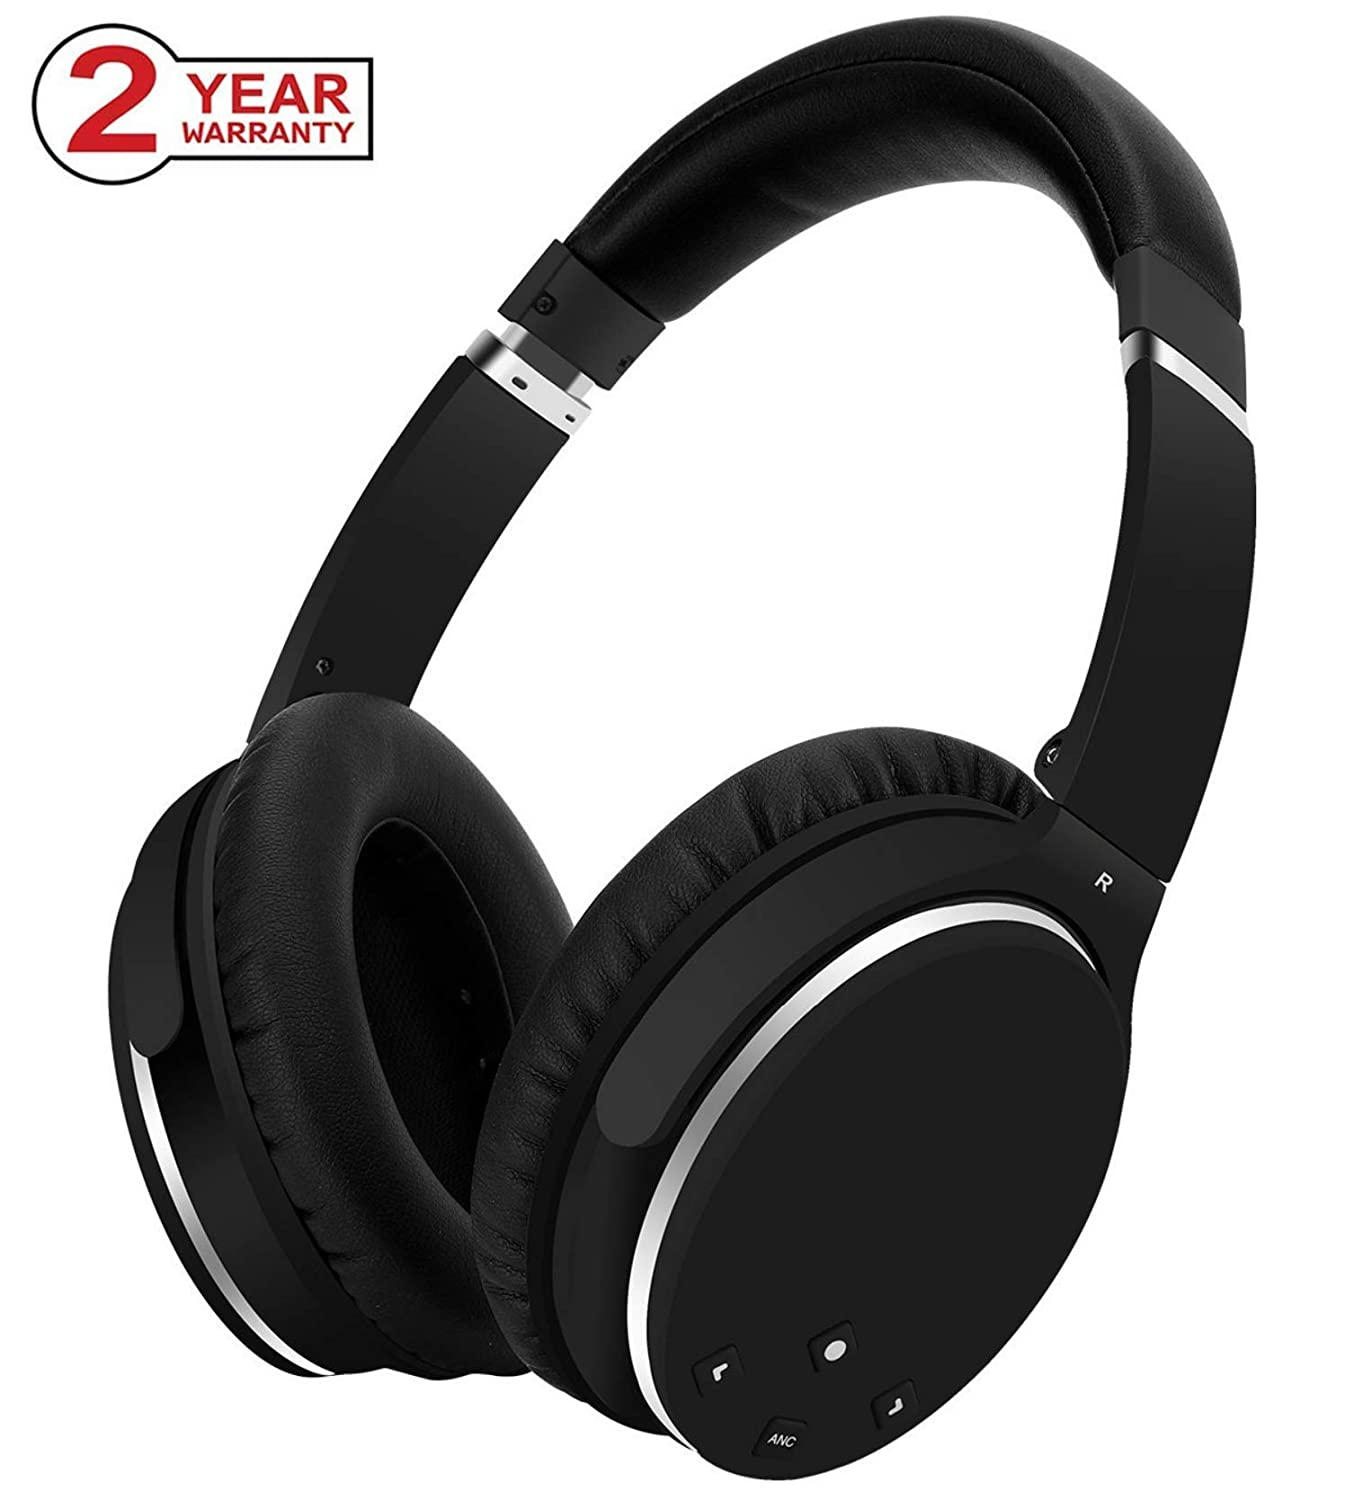 Active Noise Cancelling Headphones,Bluetooth Headphones with Microphone, Over-Ear Deep Bass Wireless Hi-Fi Stereo Headphones for Cell Phone/TV/PC -Black